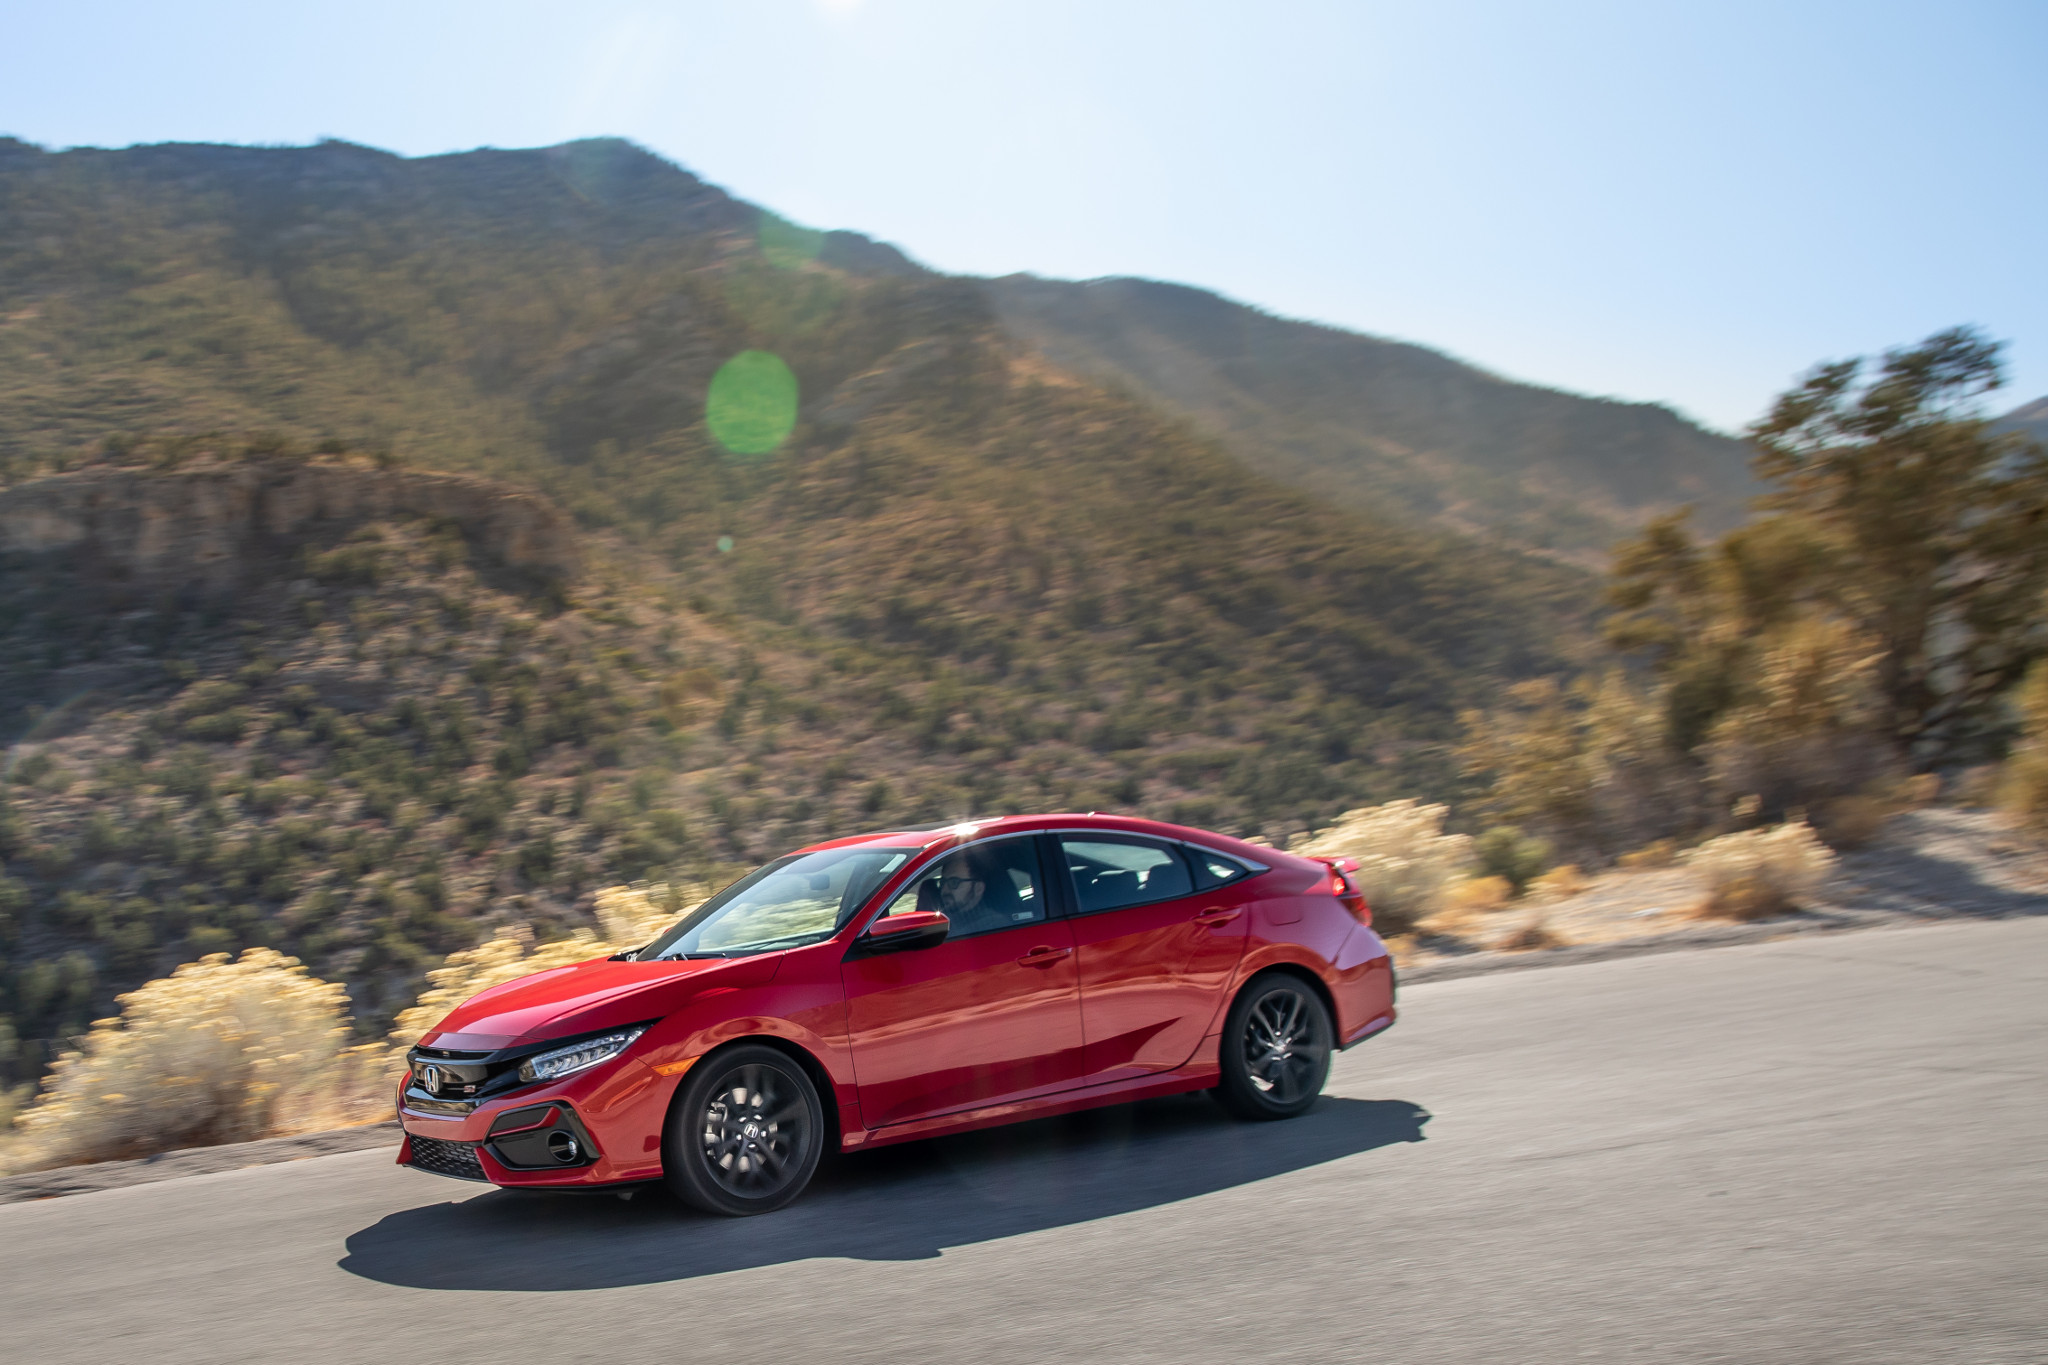 Top 5 Reviews and Videos of the Week: 2020 Honda Civic Si Sticks the Landing